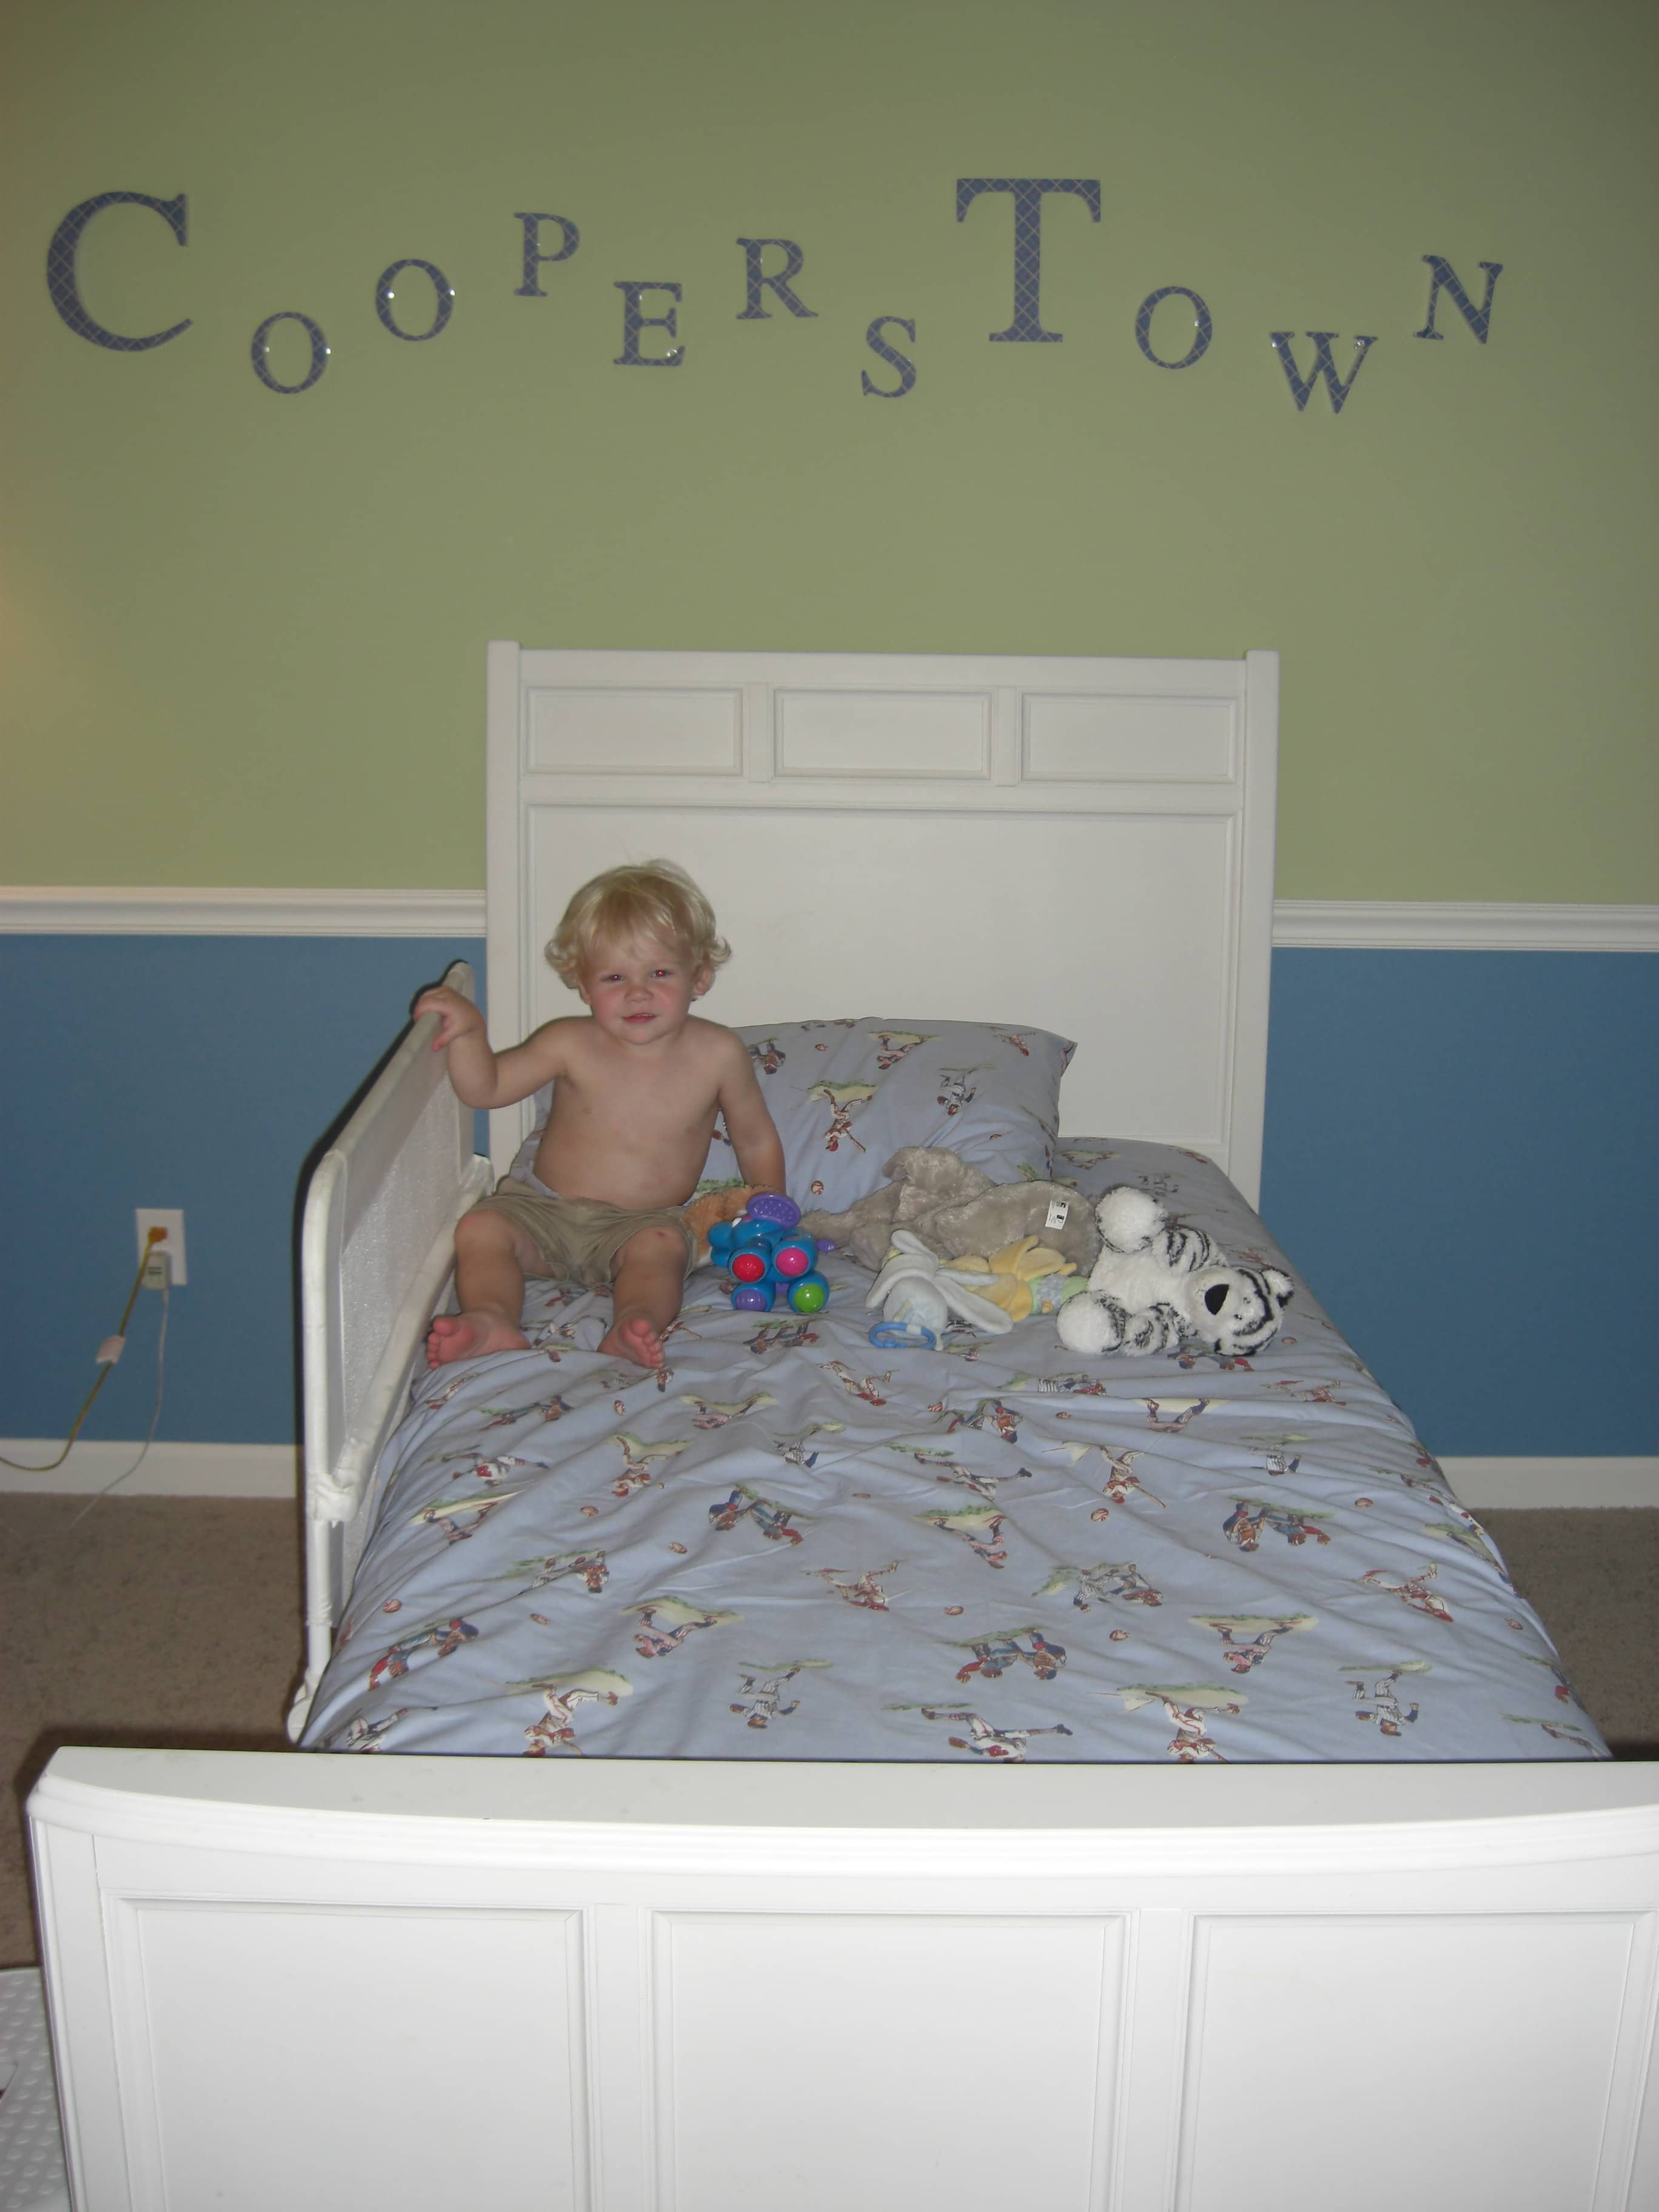 extraordinary childrens bedroom furniture. And This Means\u2026the Other Big Kid In The House Moves From A Twin Bed To FULL SIZE\u2026 Extraordinary Childrens Bedroom Furniture